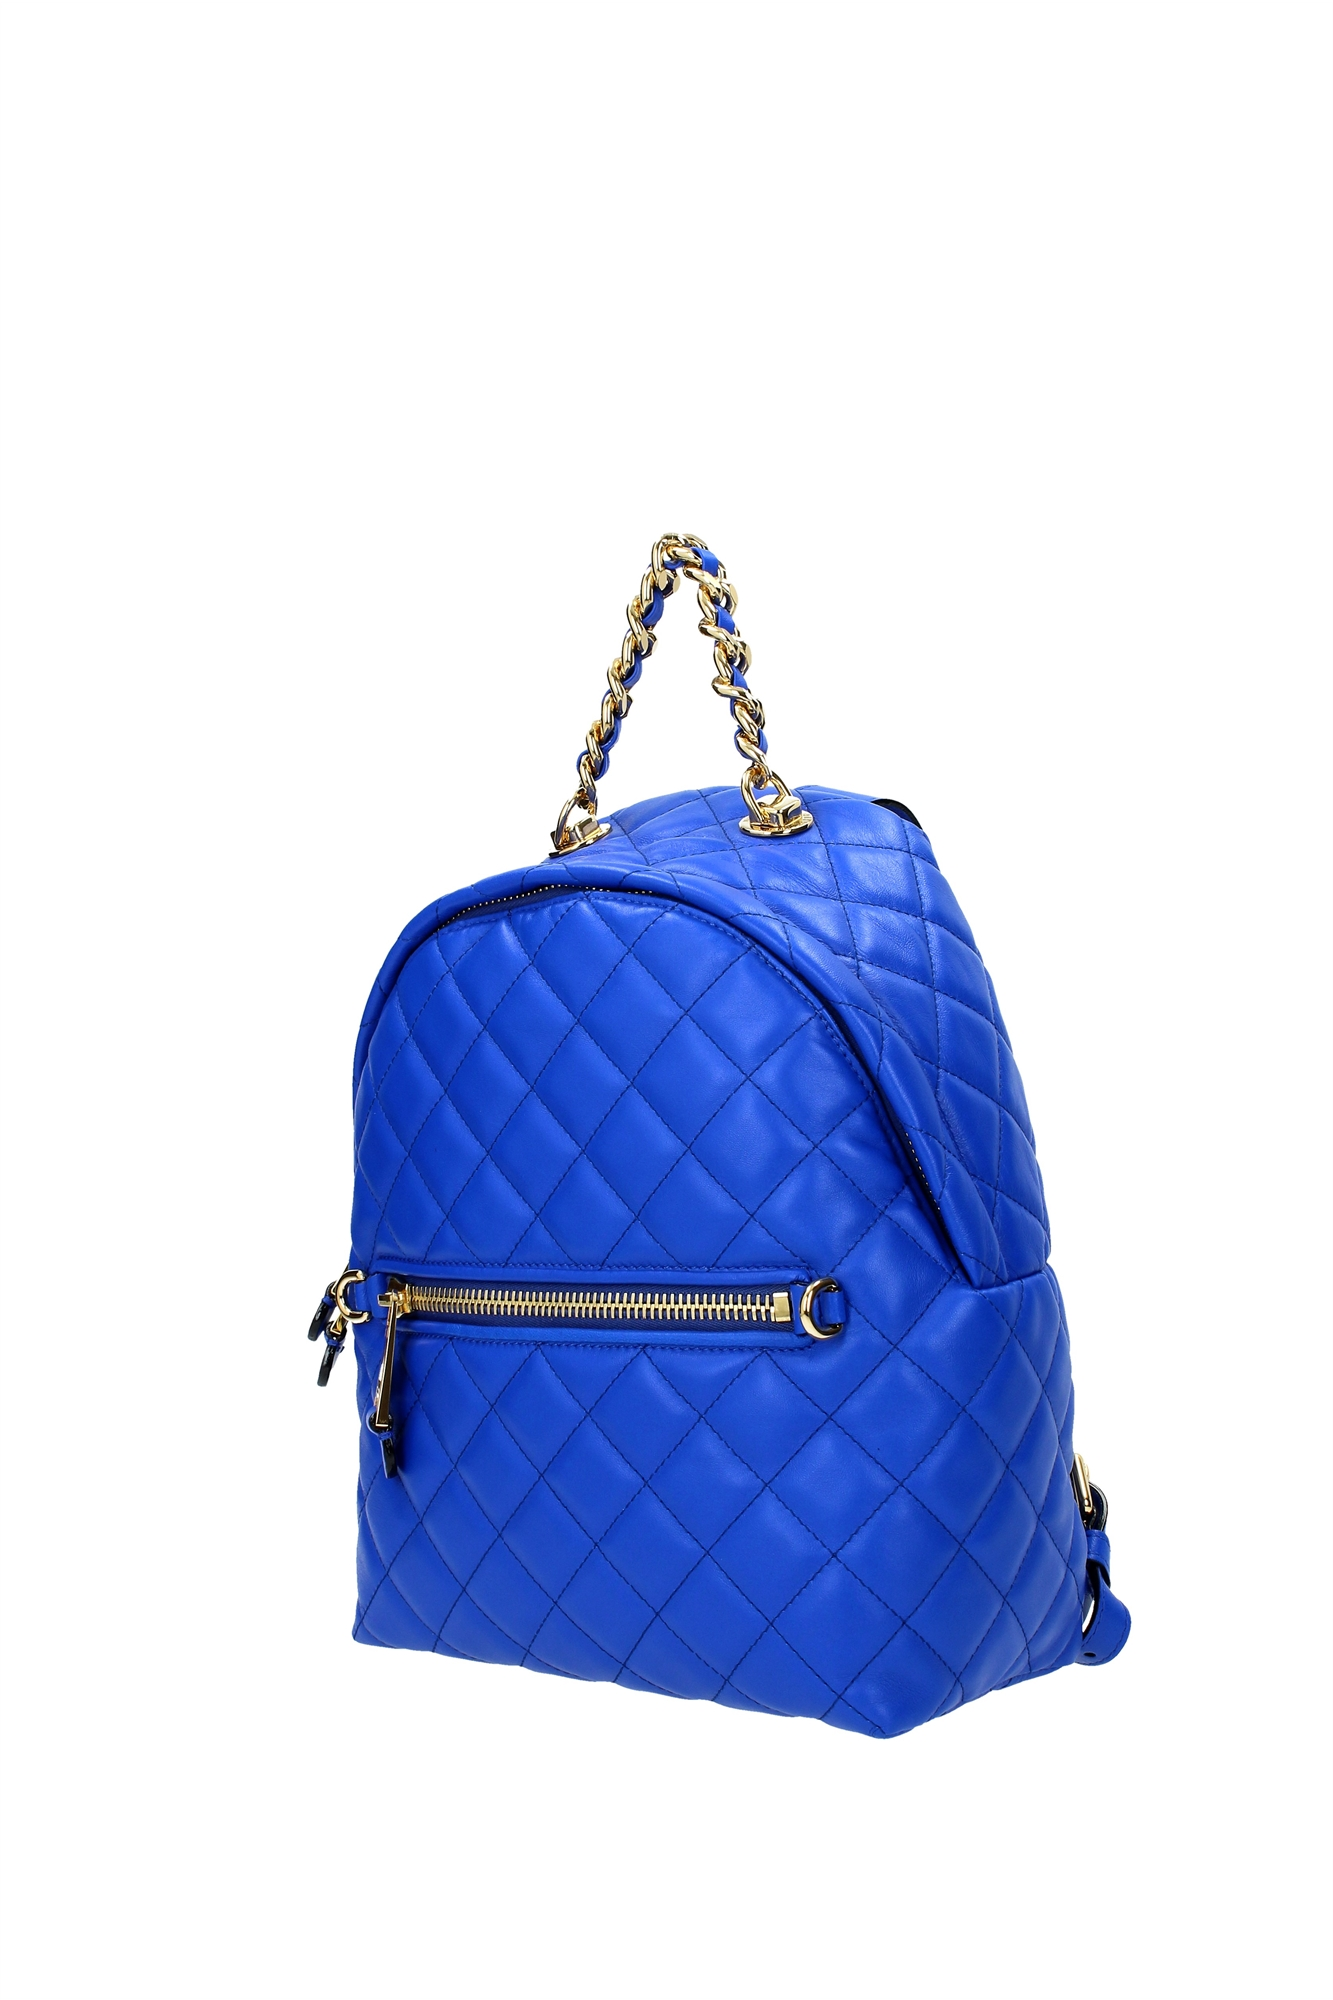 New Bowling Bags Fay Women Leather Blue NKWAIEH03007HVU601  EBay